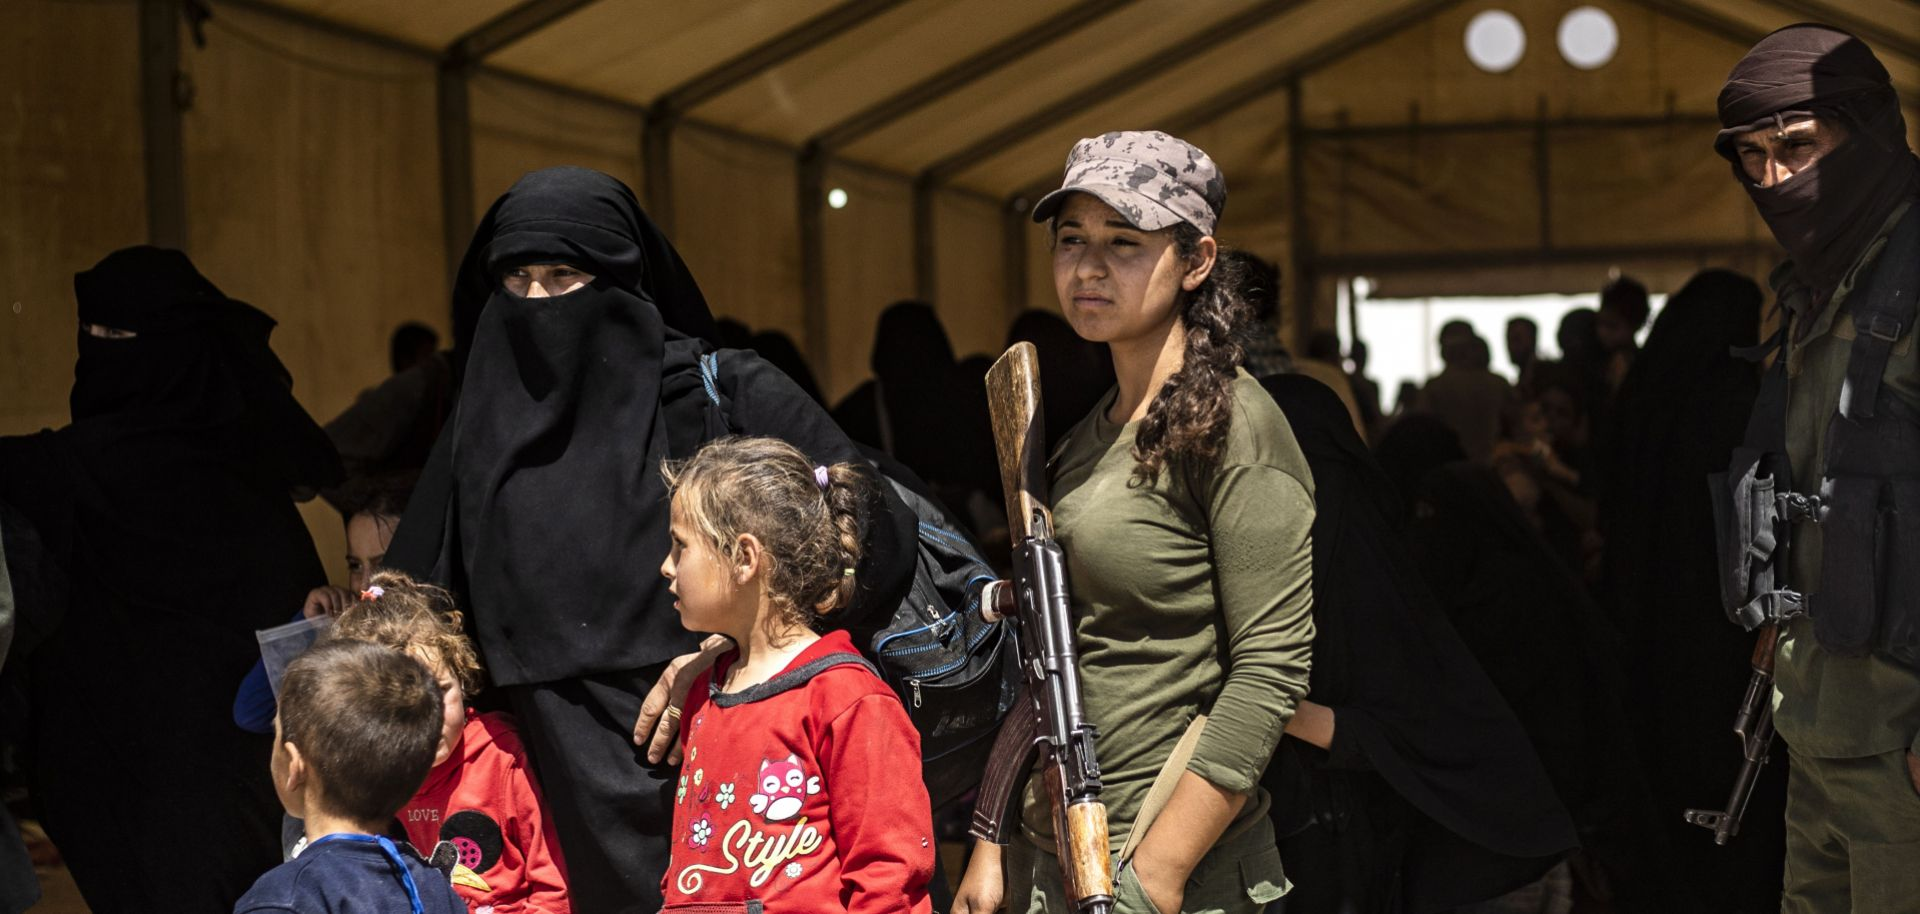 Fighters with the U.S.-backed, Kurdish-led Syrian Democratic Forces guard women and children waiting to leave the al-Hol camp in northeastern Syria on June 3, 2019.